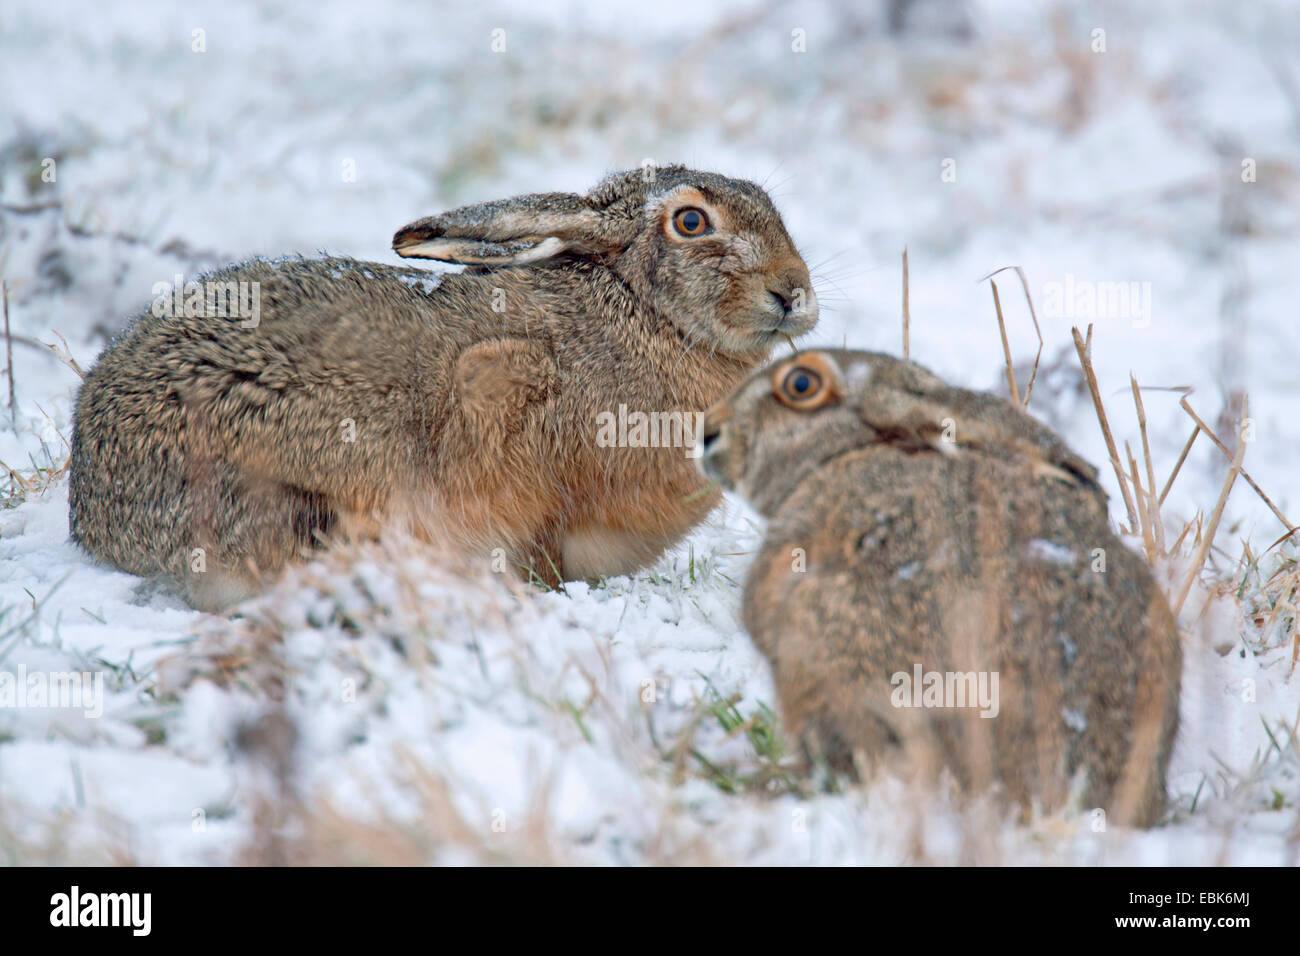 European hare, Brown hare (Lepus europaeus), two hares in a snowy meadow, Germany, Schleswig-Holstein - Stock Image